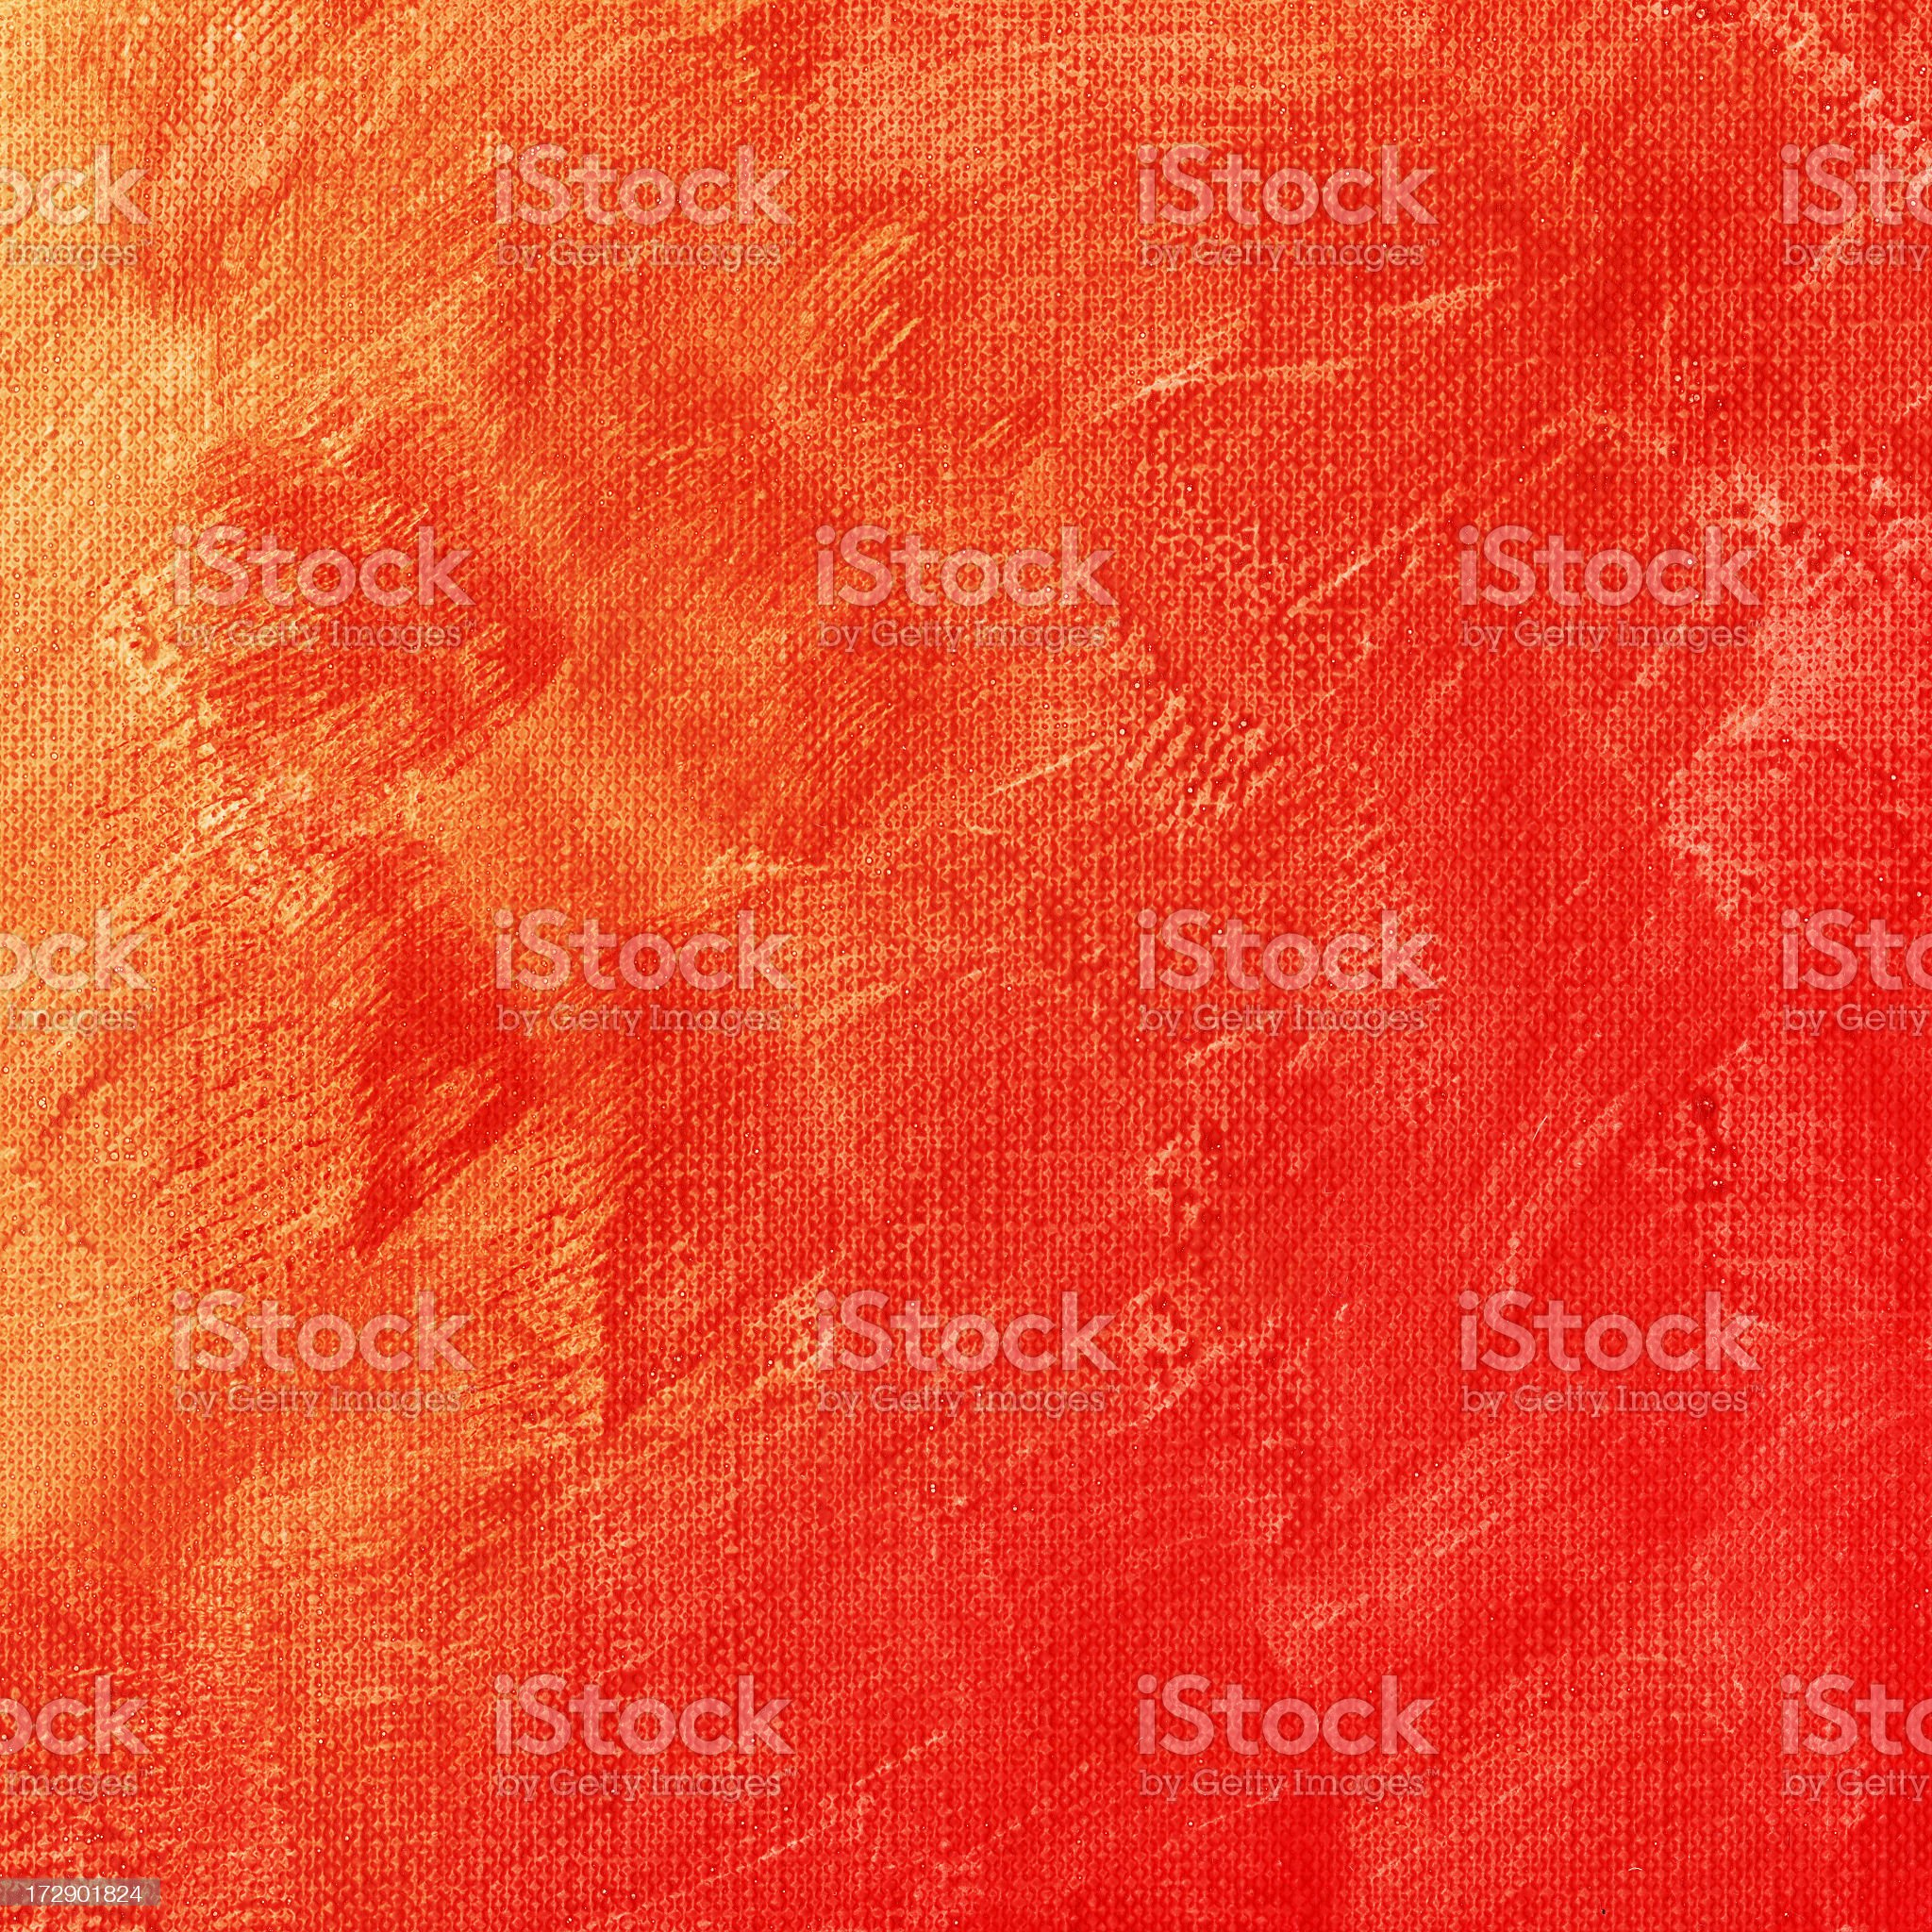 Red painted background royalty-free stock vector art